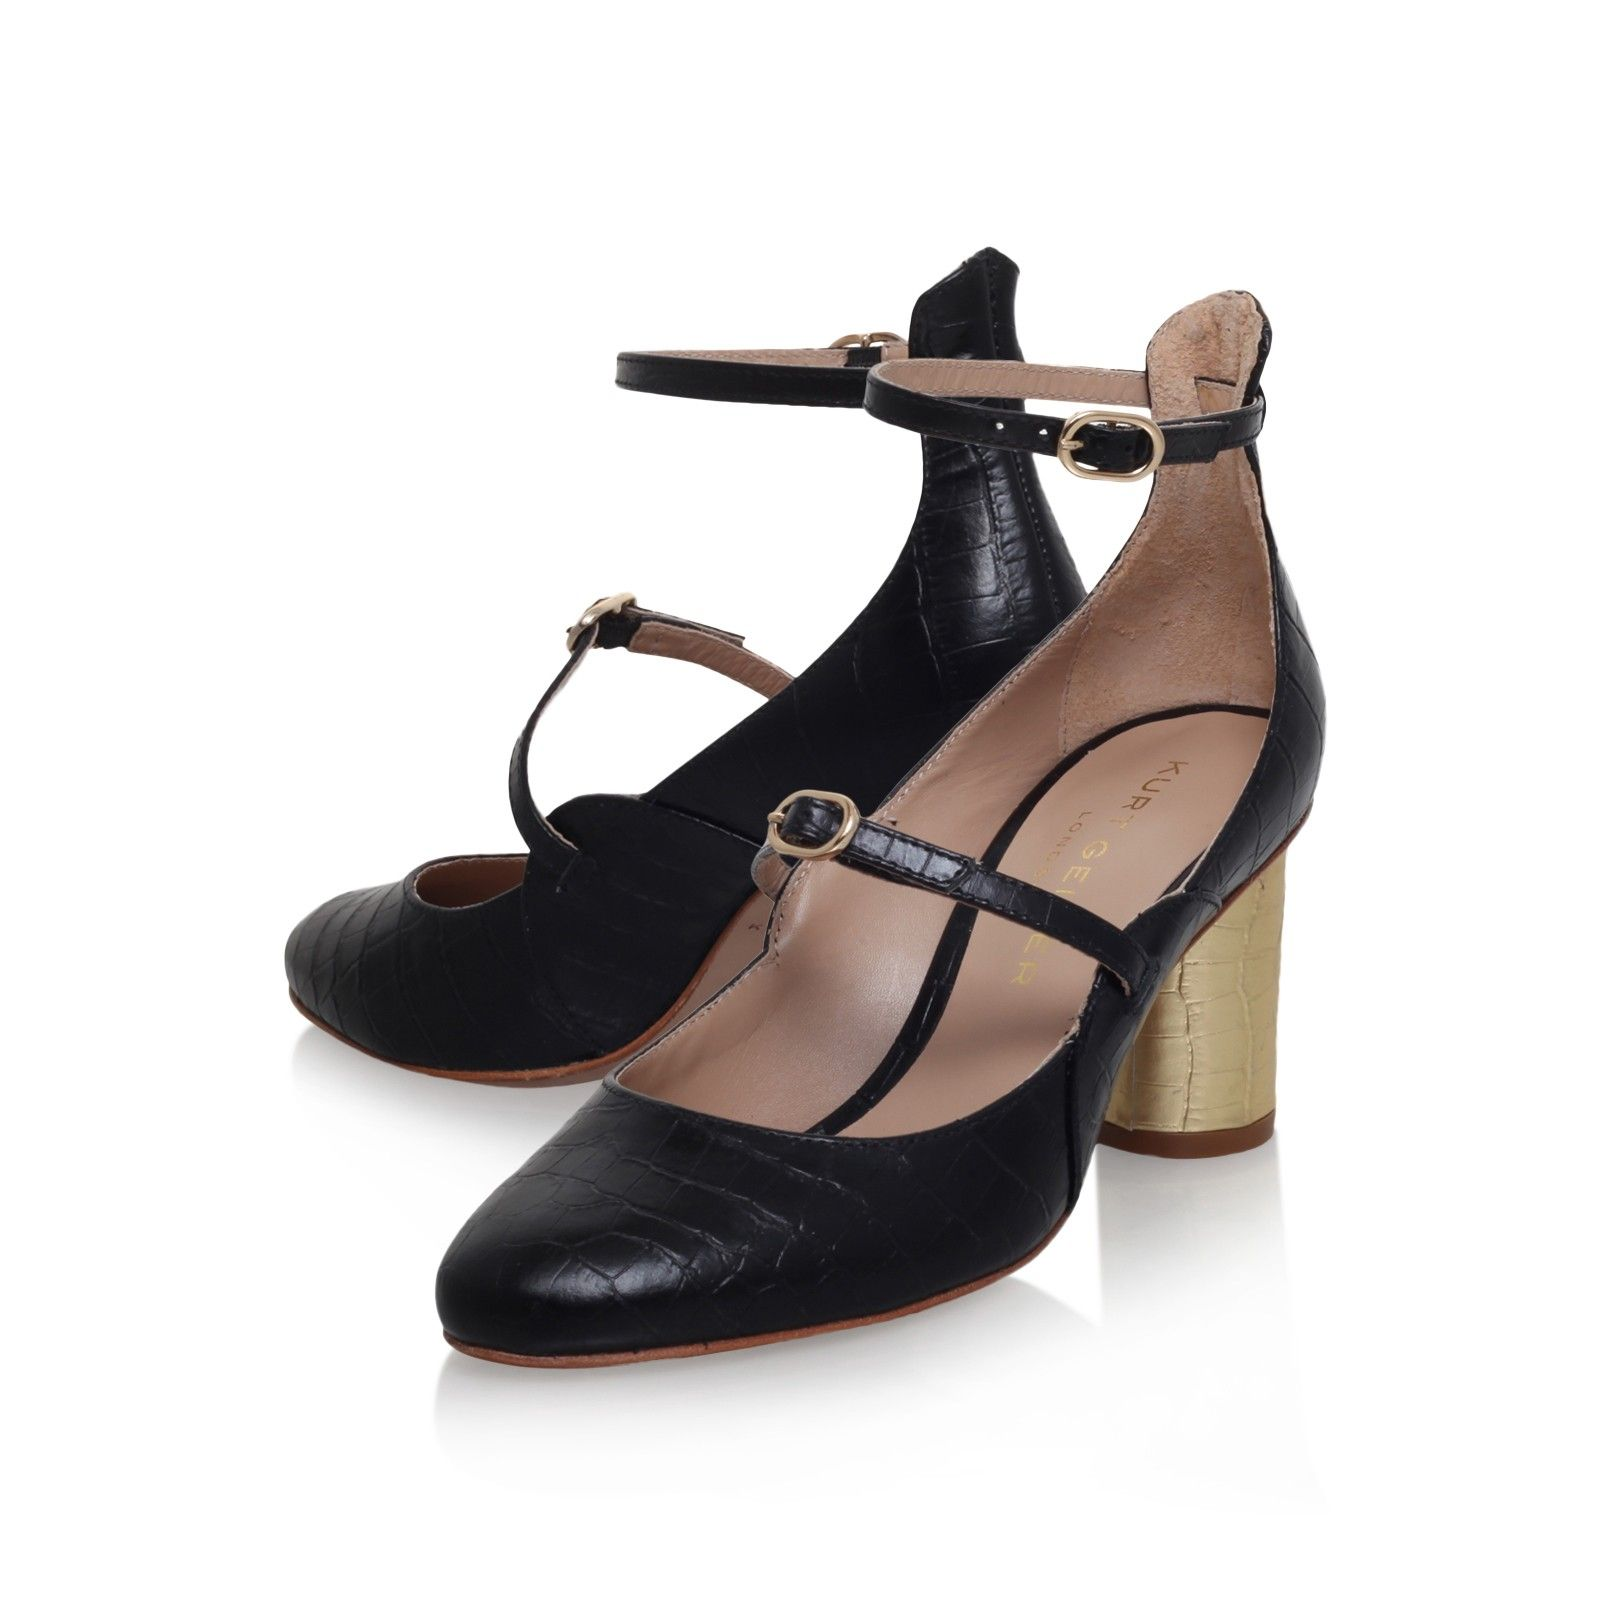 maggie black mid heel court shoes from Kurt Geiger London